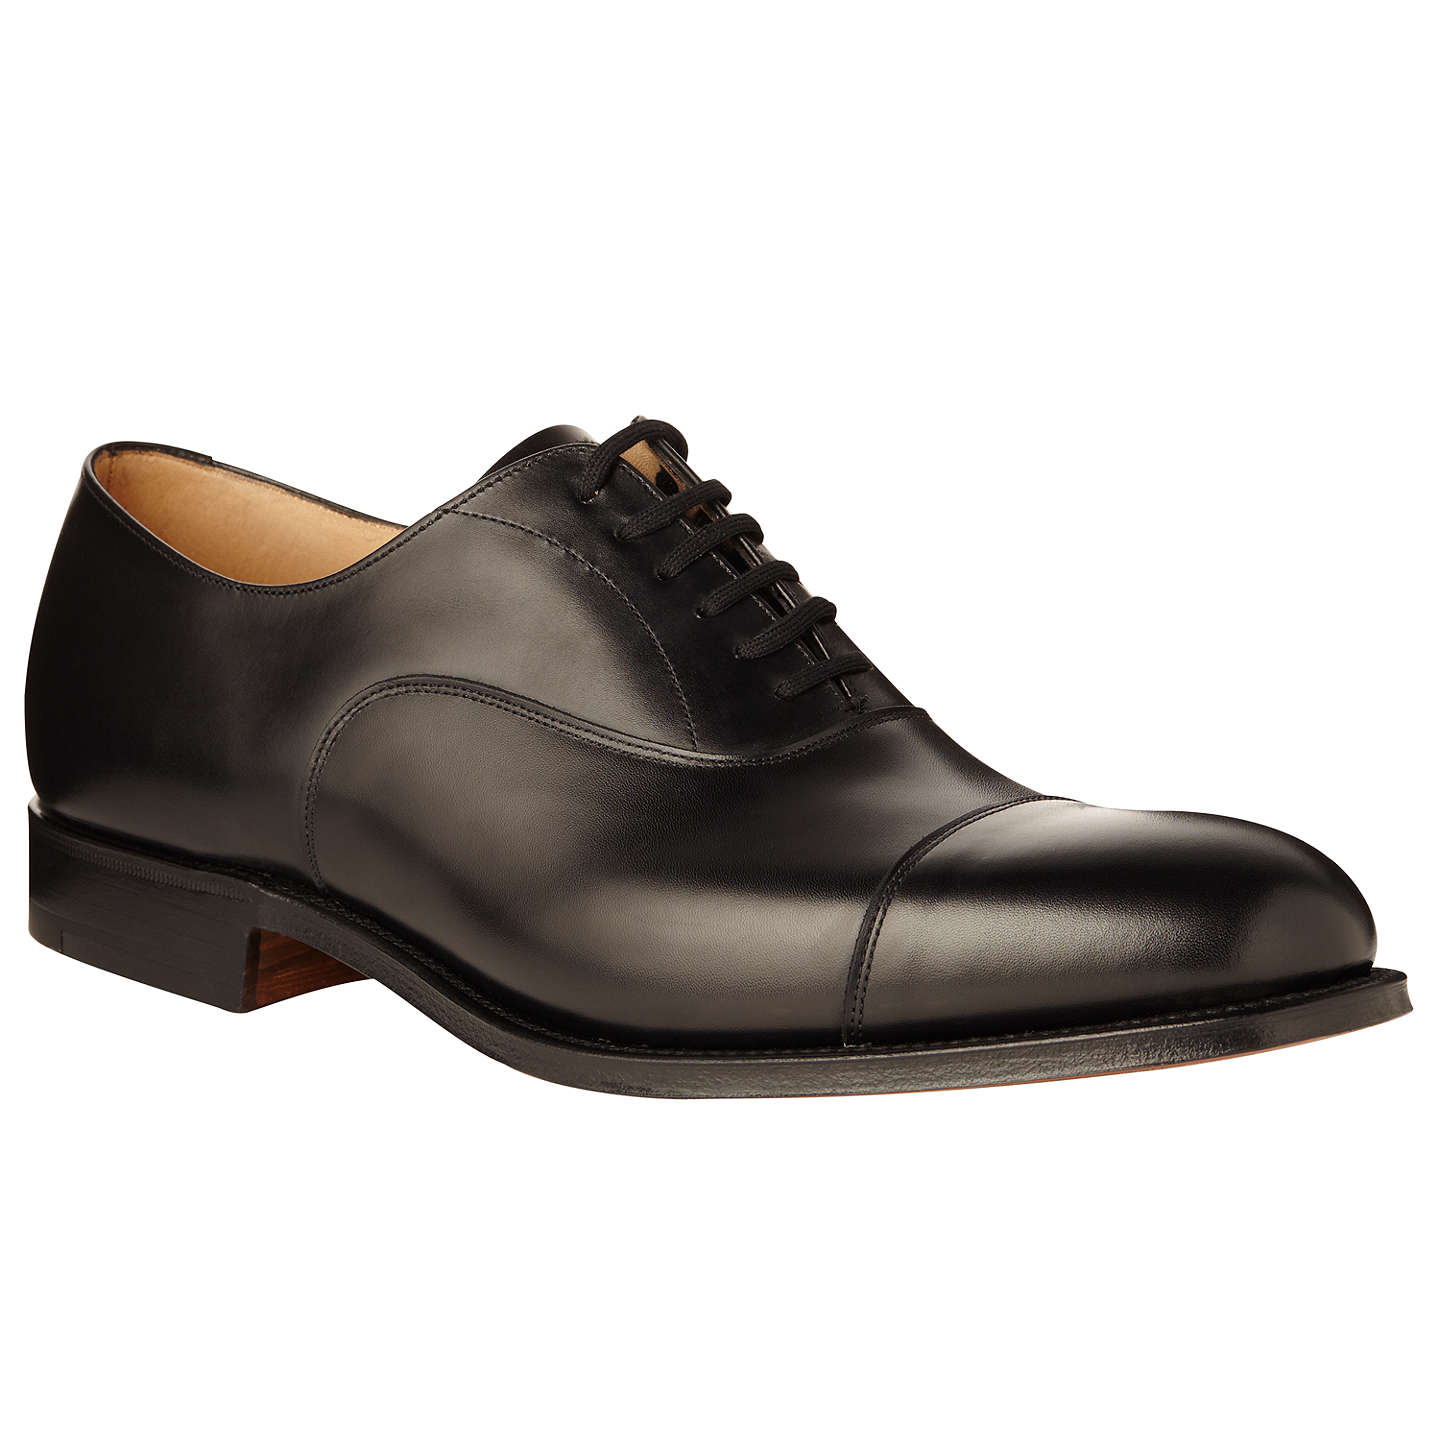 Churchs Dubai Oxford leather shoes